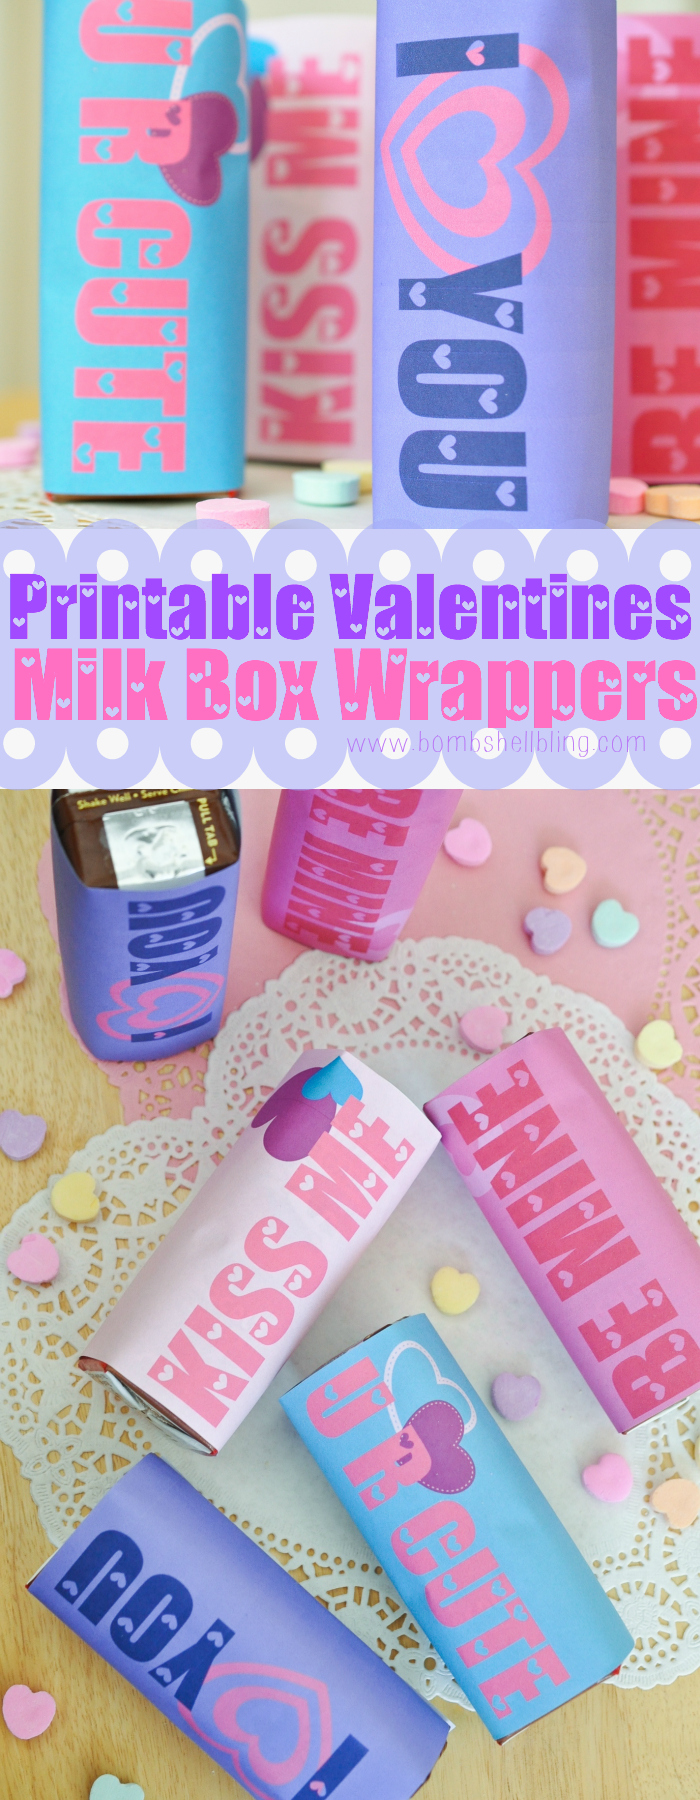 These Valentine's Day printable milk box wrappers are perfect to make drinks for a class party or lunchbox extra cute this February! FREE to download now.